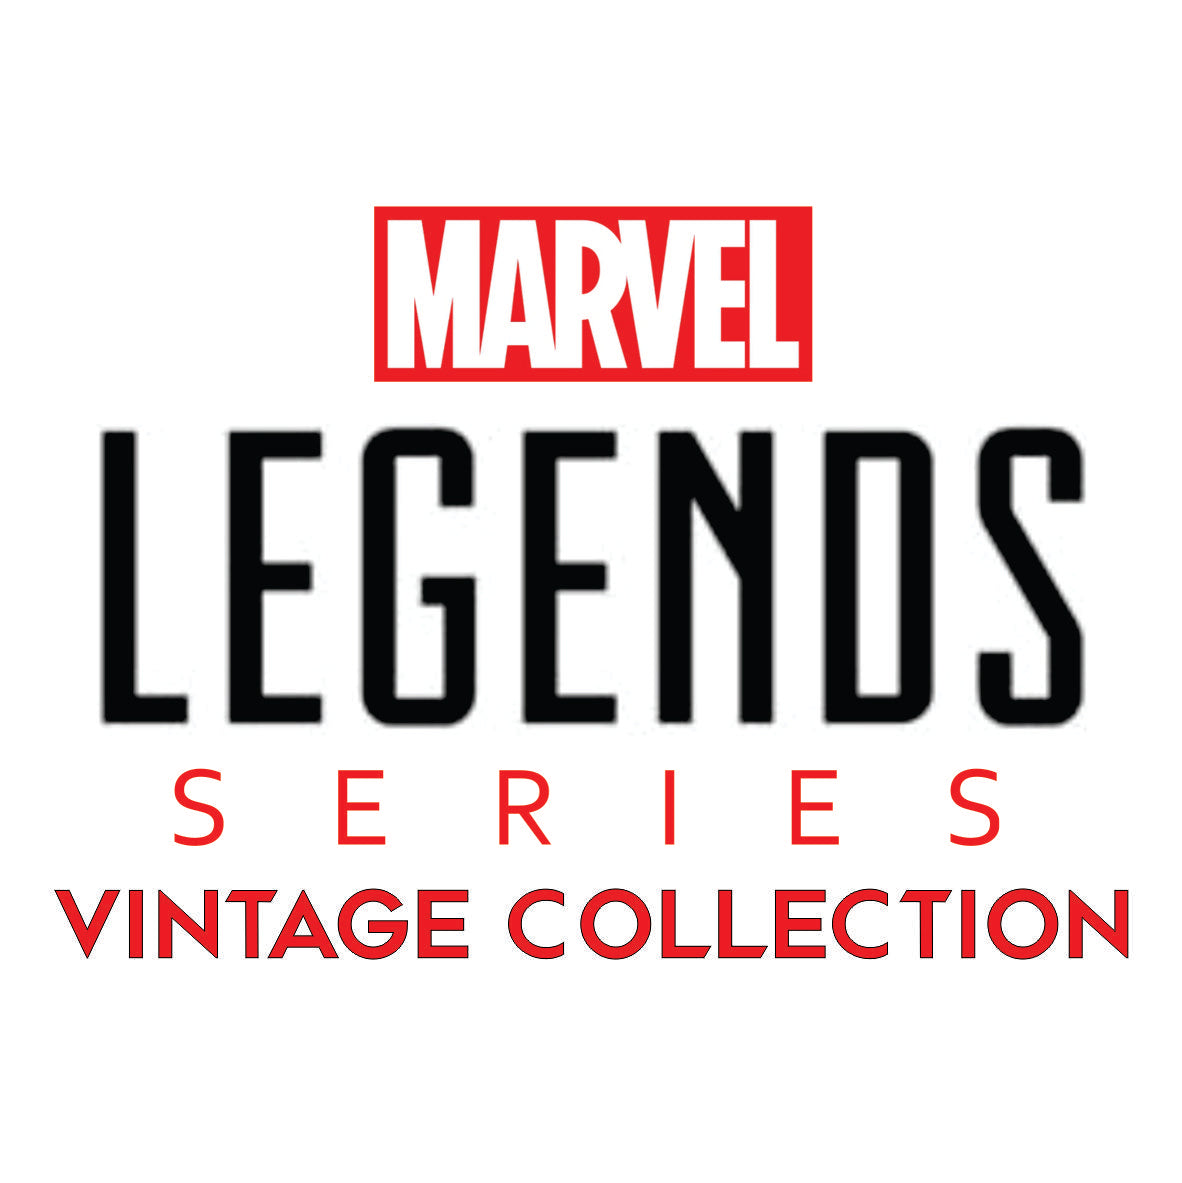 Marvel Legends Vintage Collection